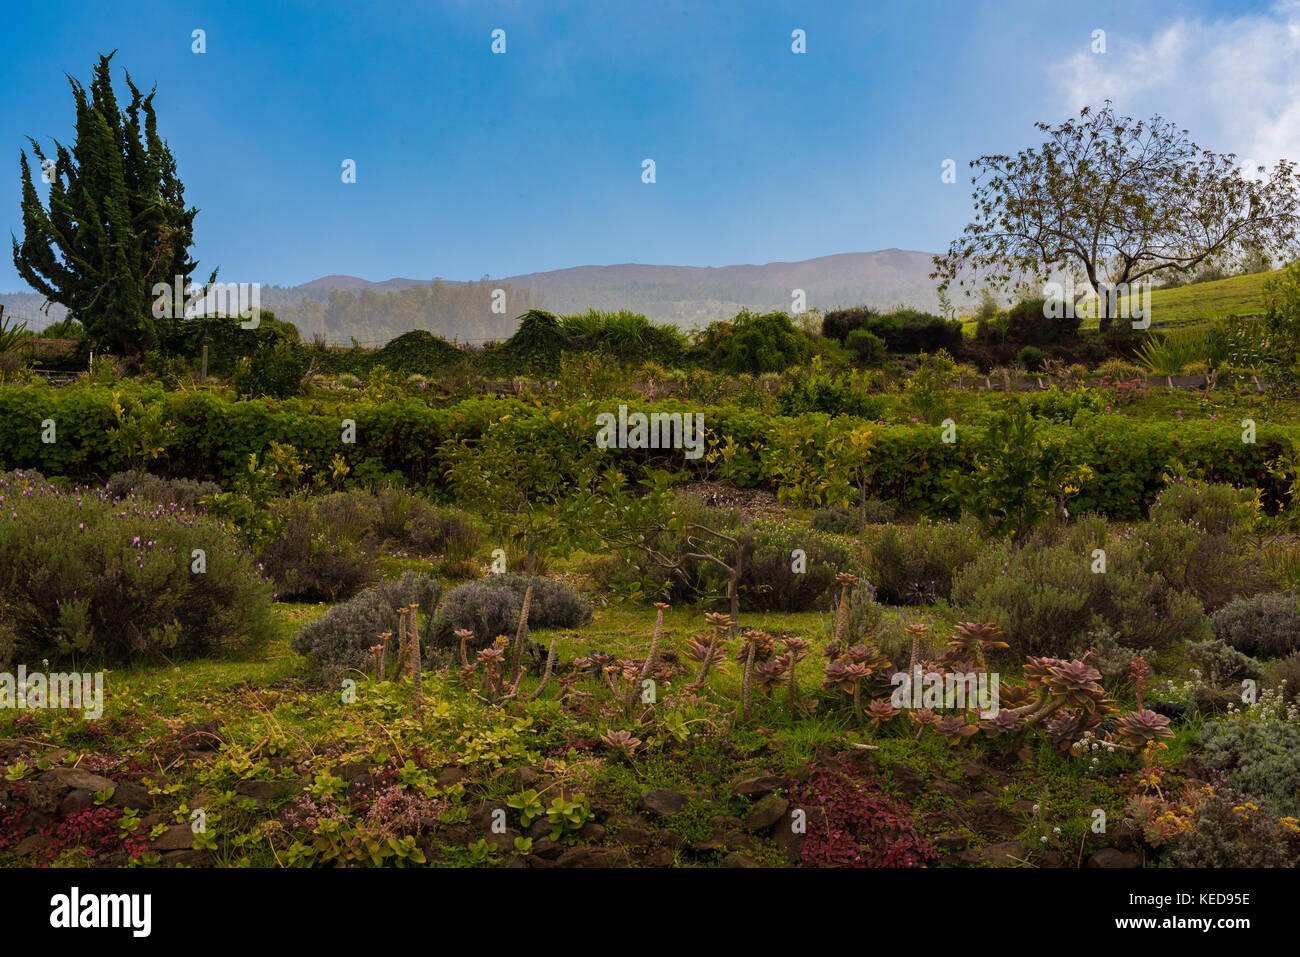 Eerie colorful plants growing in Maui Hawaii that seem ancient and almost mystical. Mountains are in the background. - Stock Image